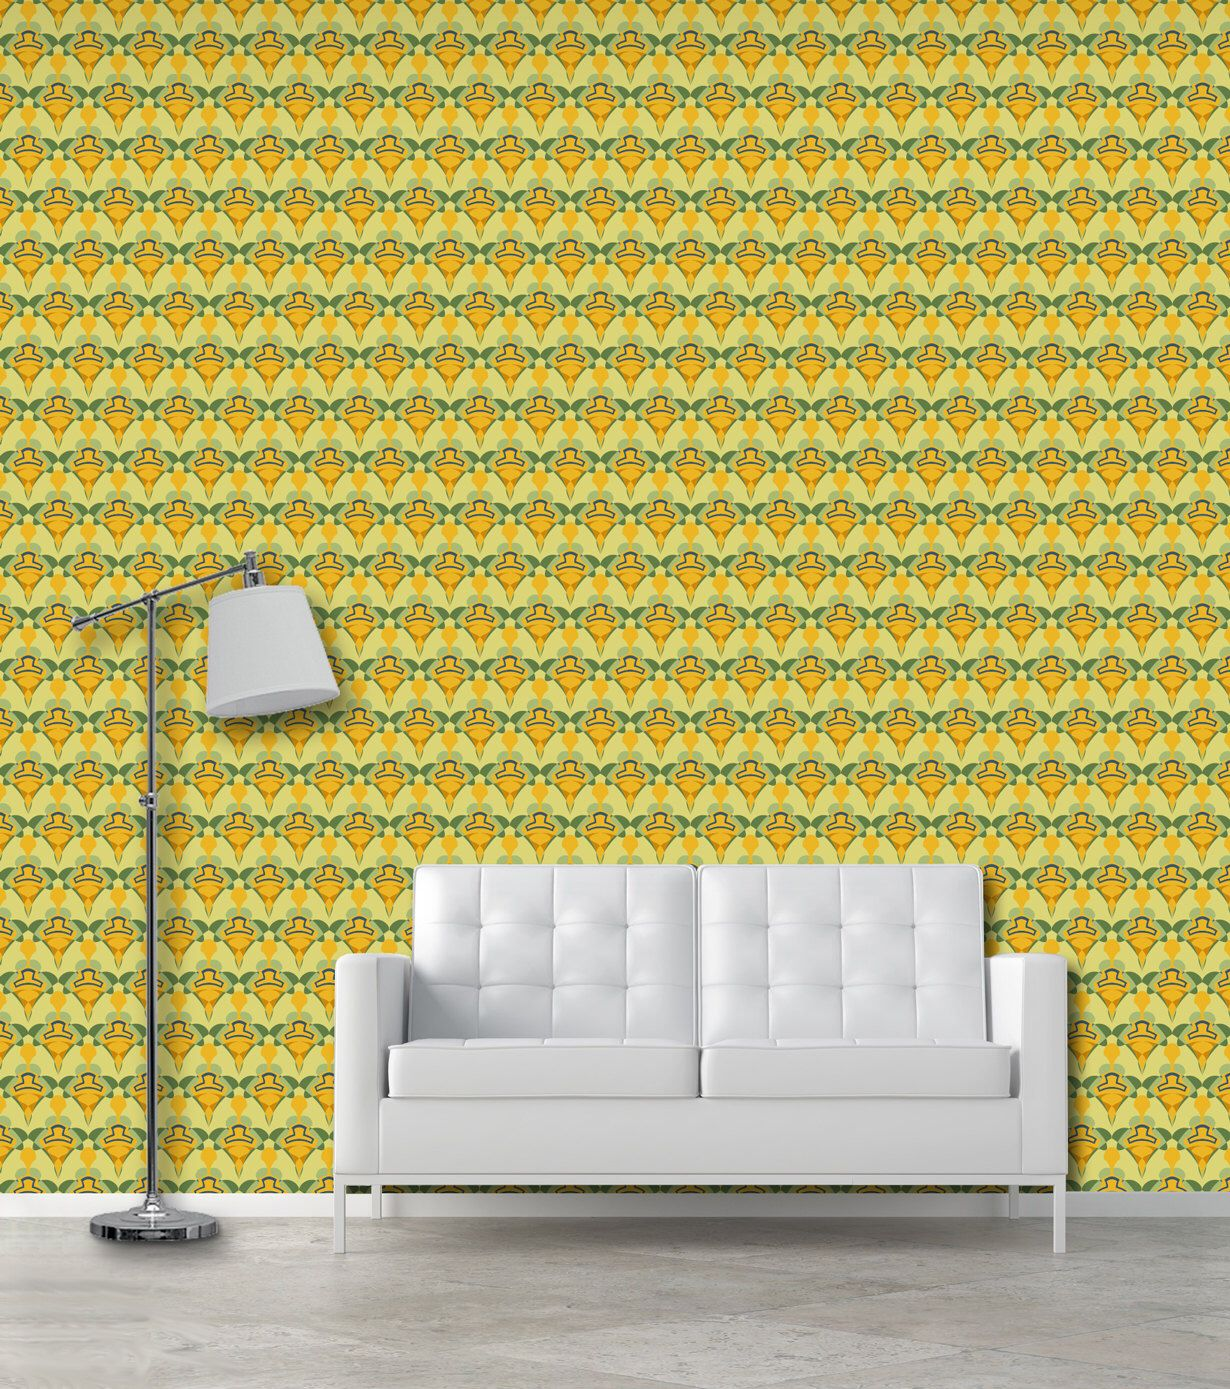 Art Deco wall pattern self adhesive vinyl wallpaper removable decal ...